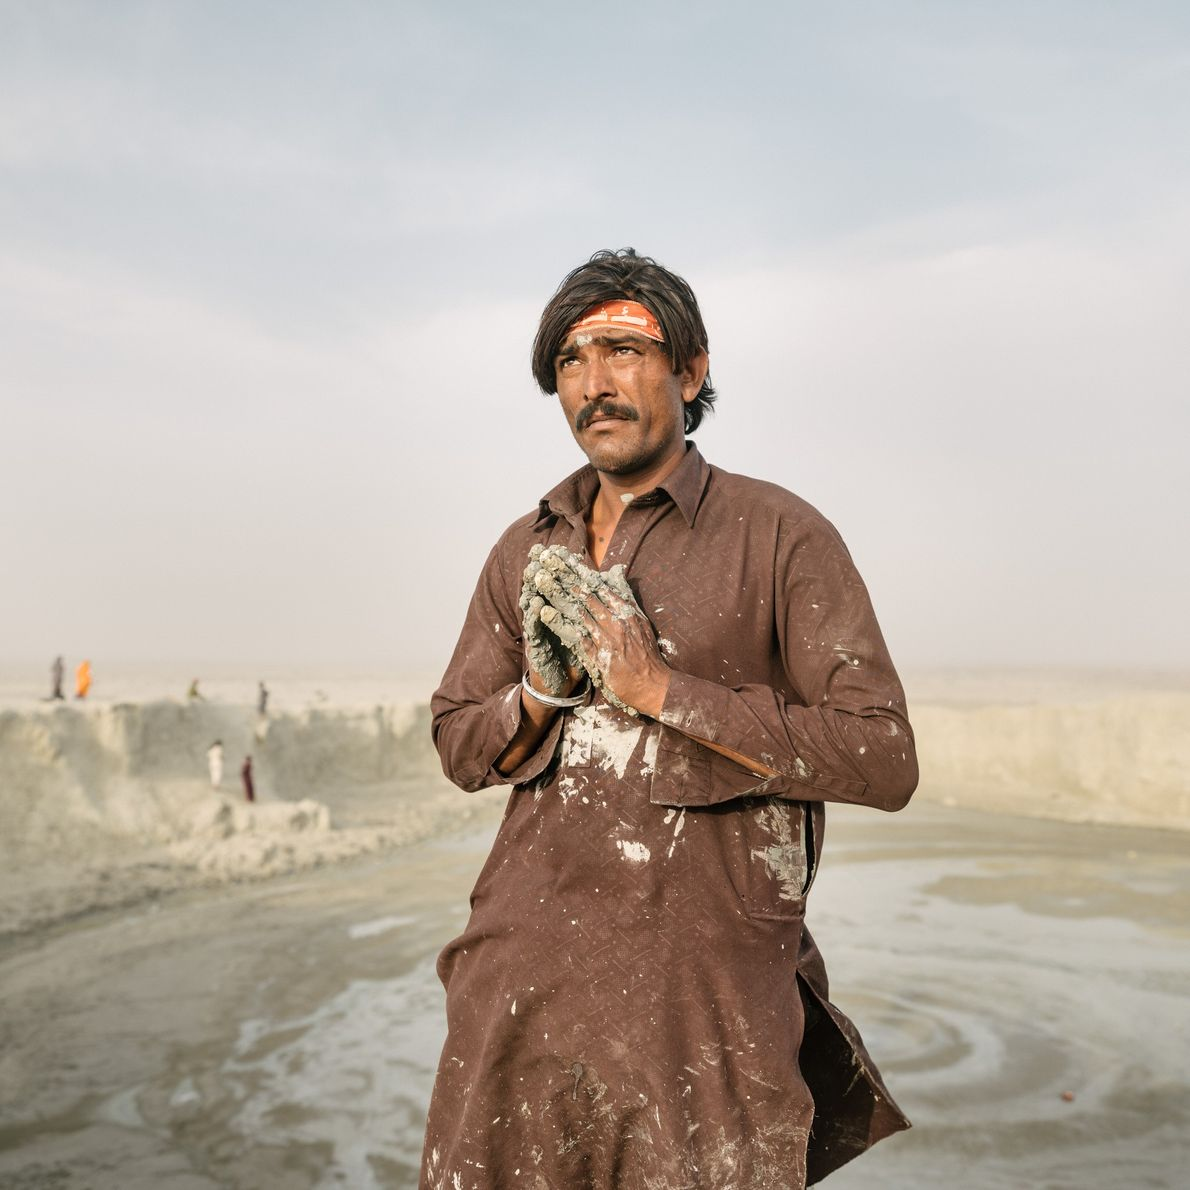 Hands caked in mud, a pilgrim circumnavigates the Chandragup mud volcano.